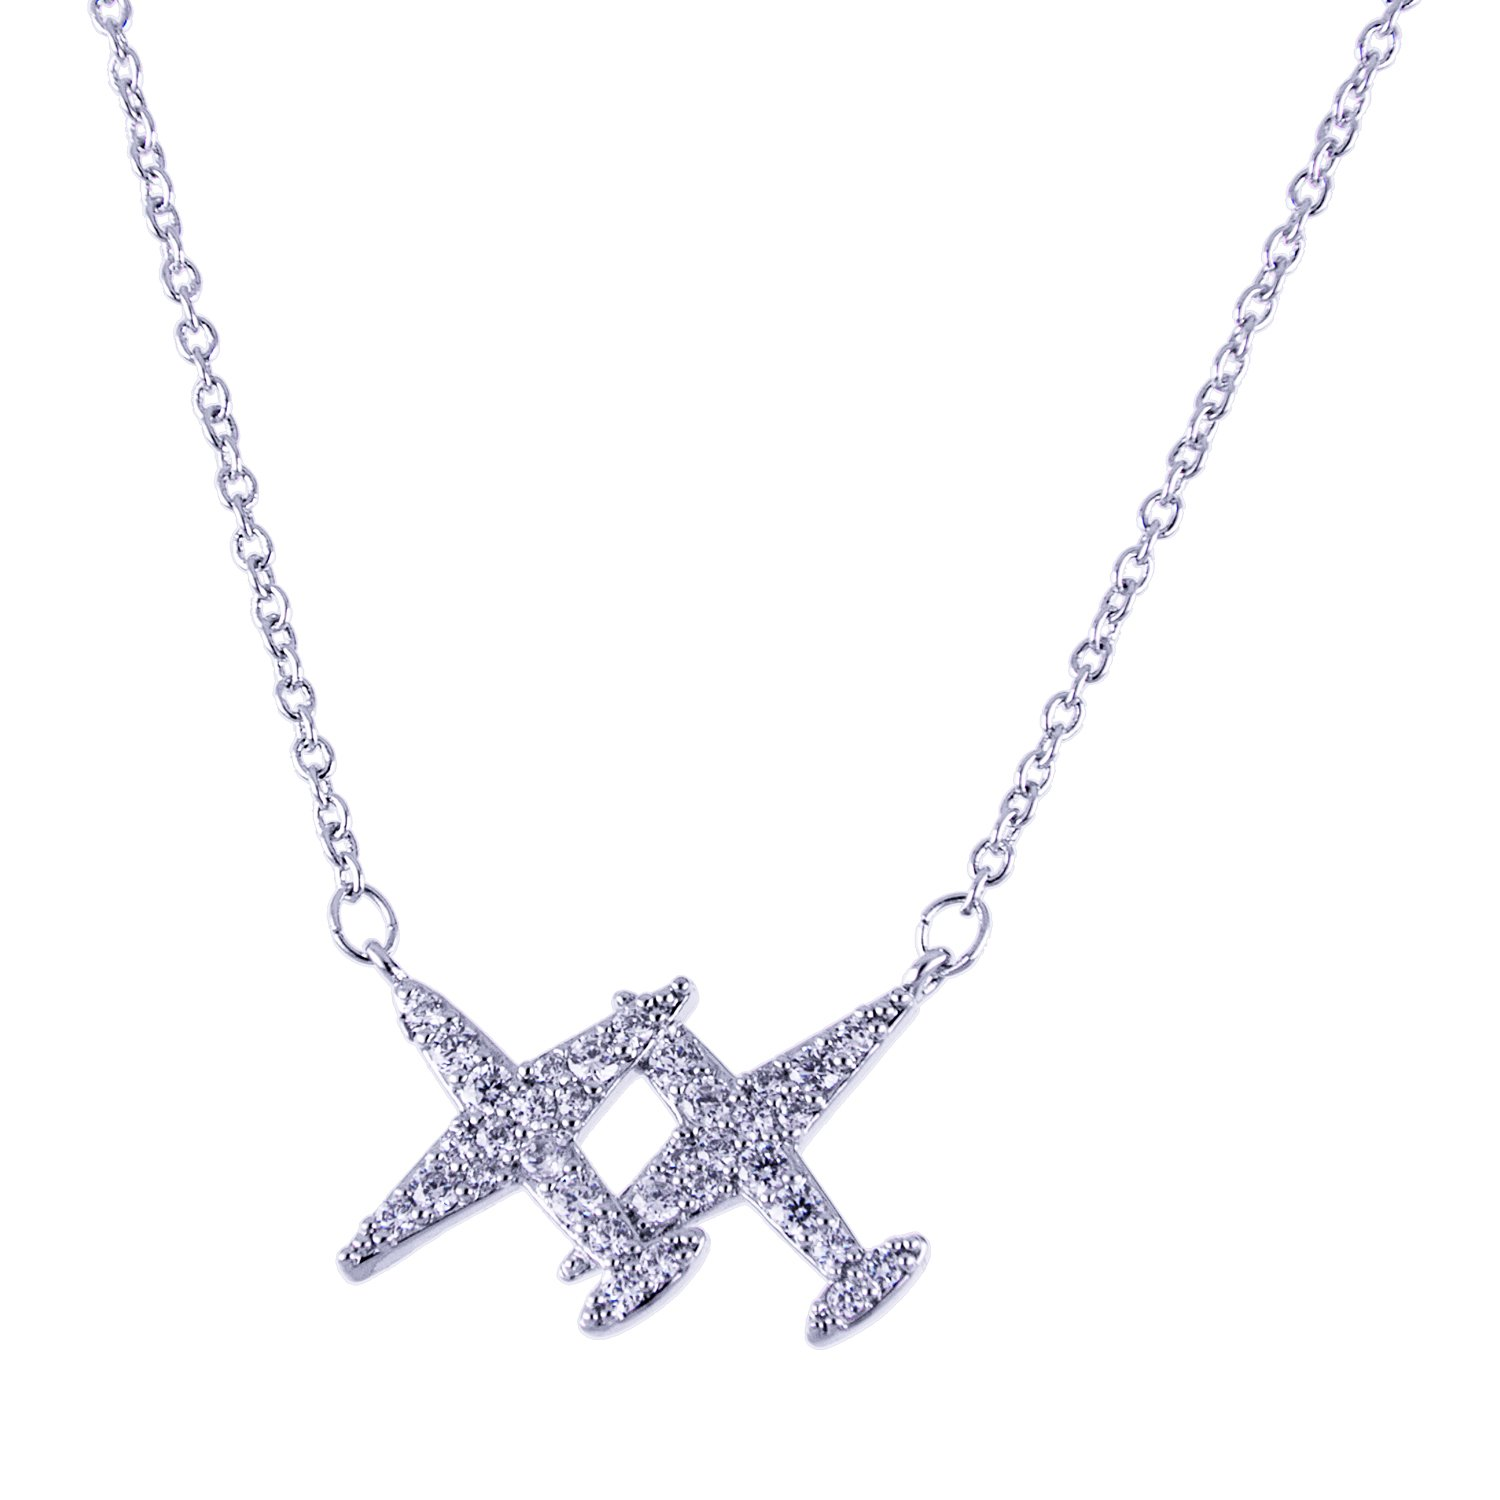 ISAACSONG.DESIGN I's Silver Tone Valentine's Couple Love Travel Theme Aircraft with Austrian Crystal Necklace